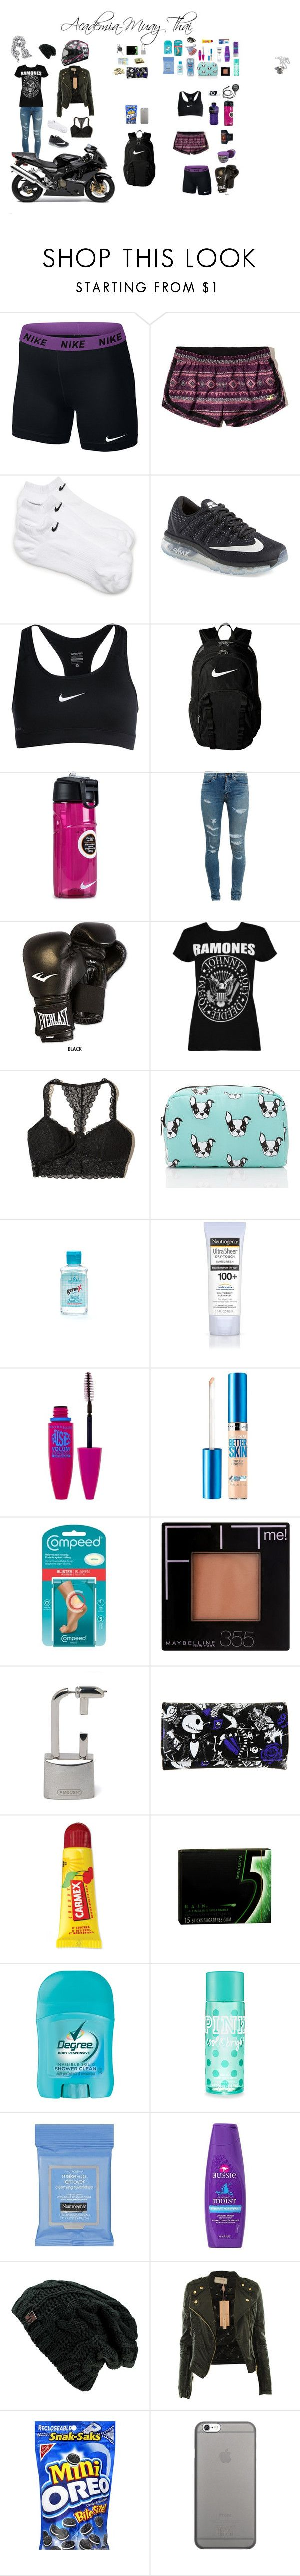 """Academia-Muay thai"" by biih-fferreira on Polyvore featuring moda, NIKE, Hollister Co., Yves Saint Laurent, Everlast, Boohoo, Forever 21, Colgate, Neutrogena e Maybelline"